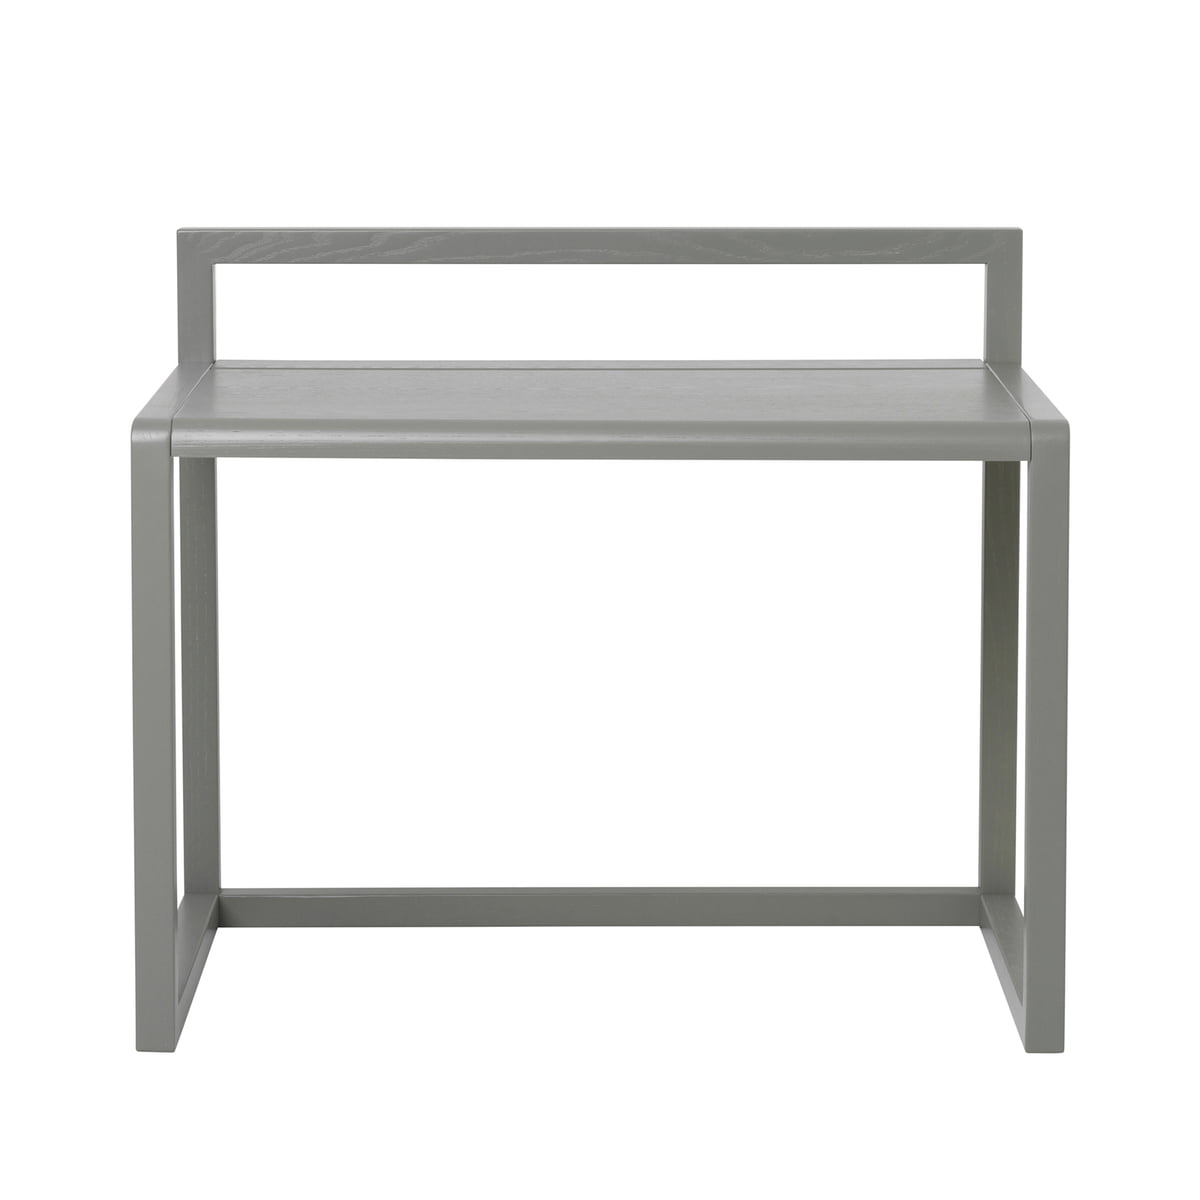 architect furniture. Little Architect Desk By Ferm Living In Grey Furniture